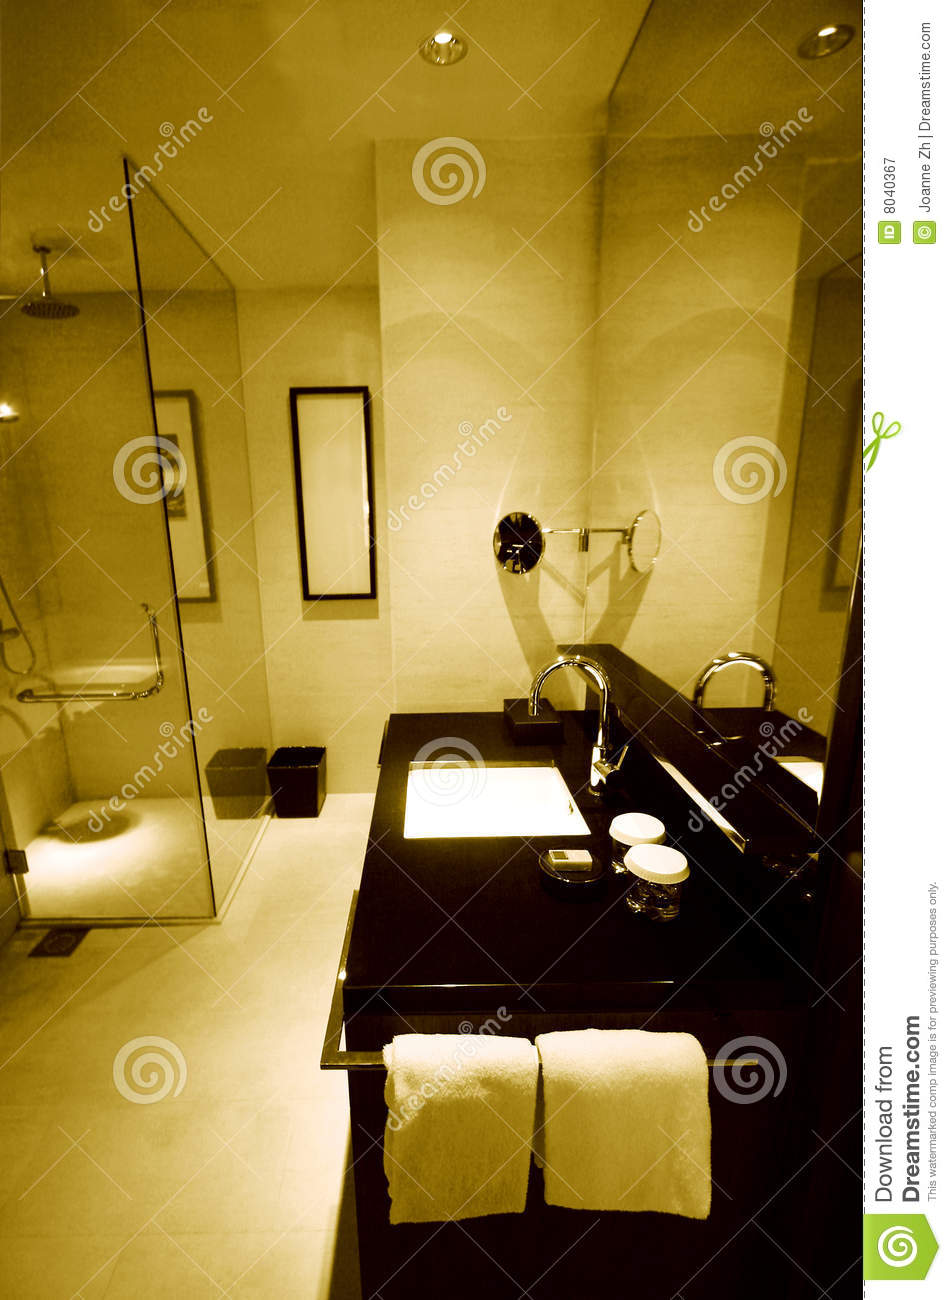 New Luxury Resort Hotel Bathrooms Royalty Free Stock Photography  Image 8040367